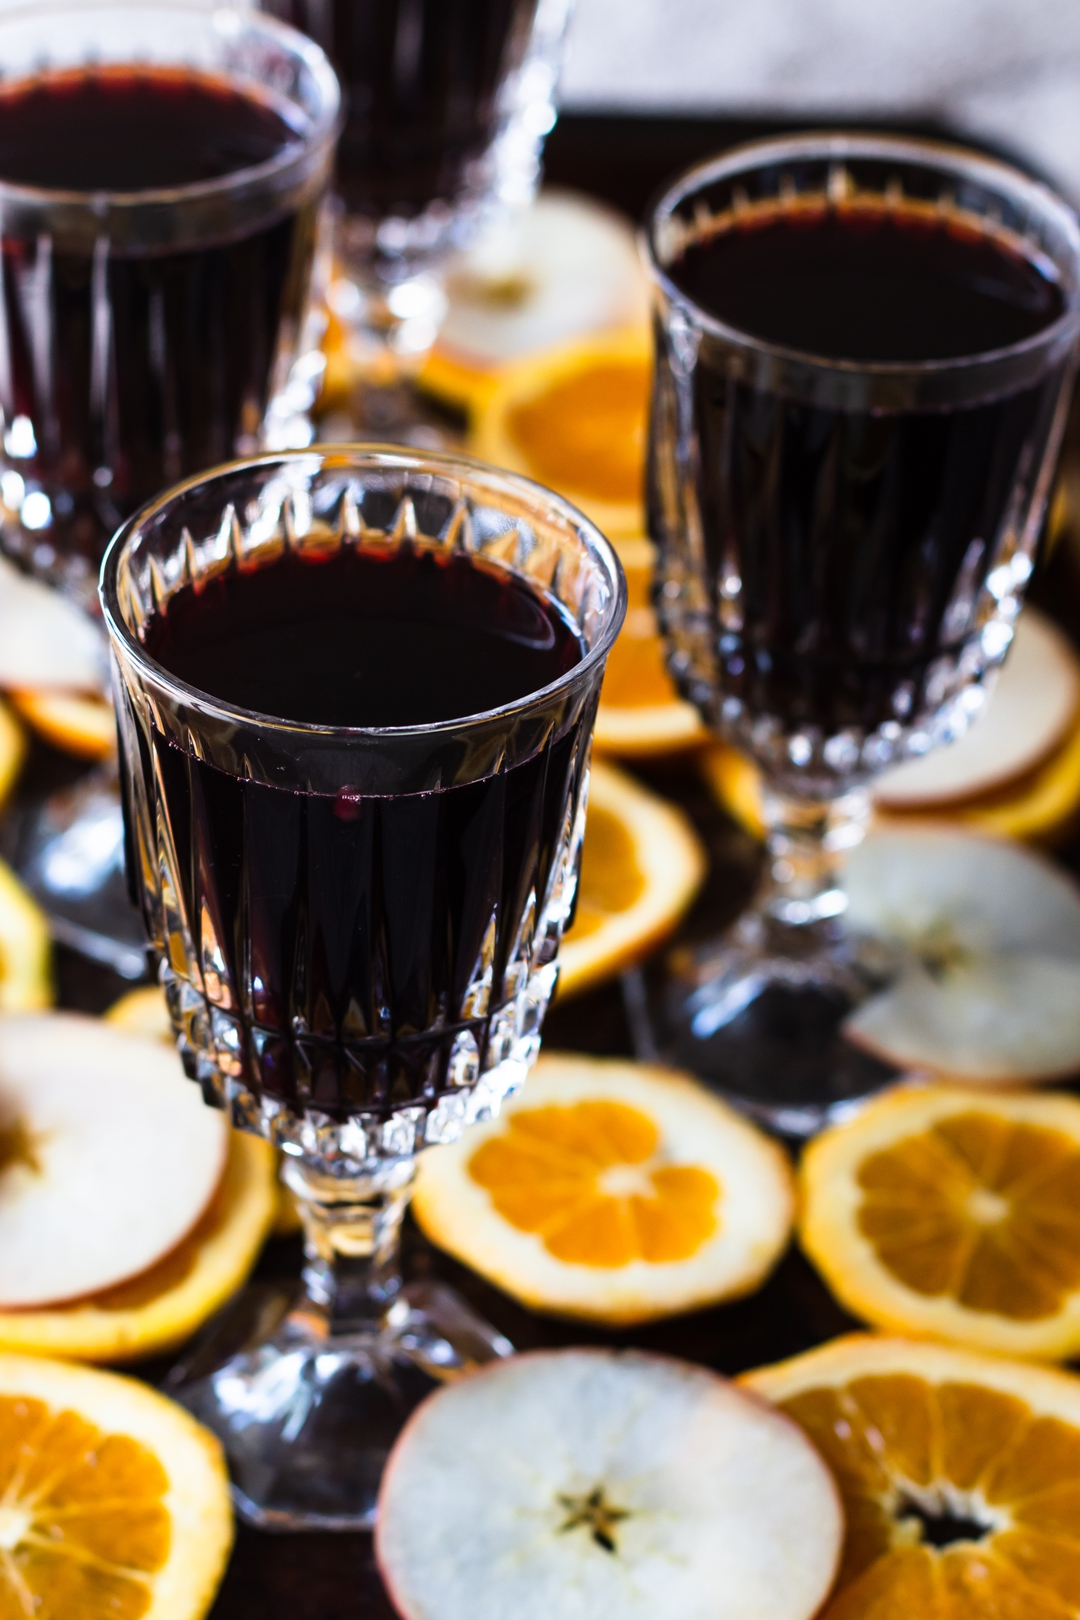 45 degree shot of mulled wine in crystal wine glasses surrounded by orange and apple slices.